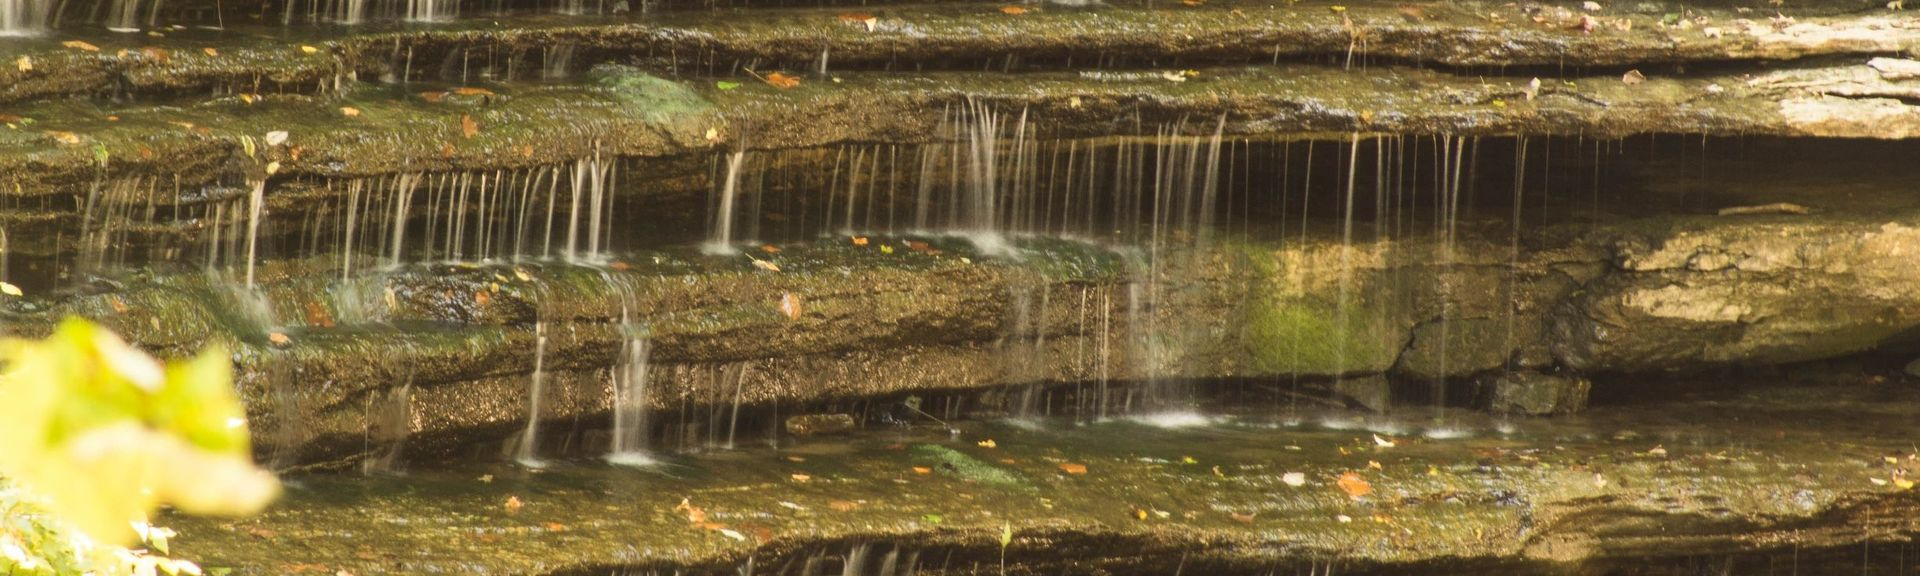 Clifty Falls State Park, Madison, Indiana, United States of America